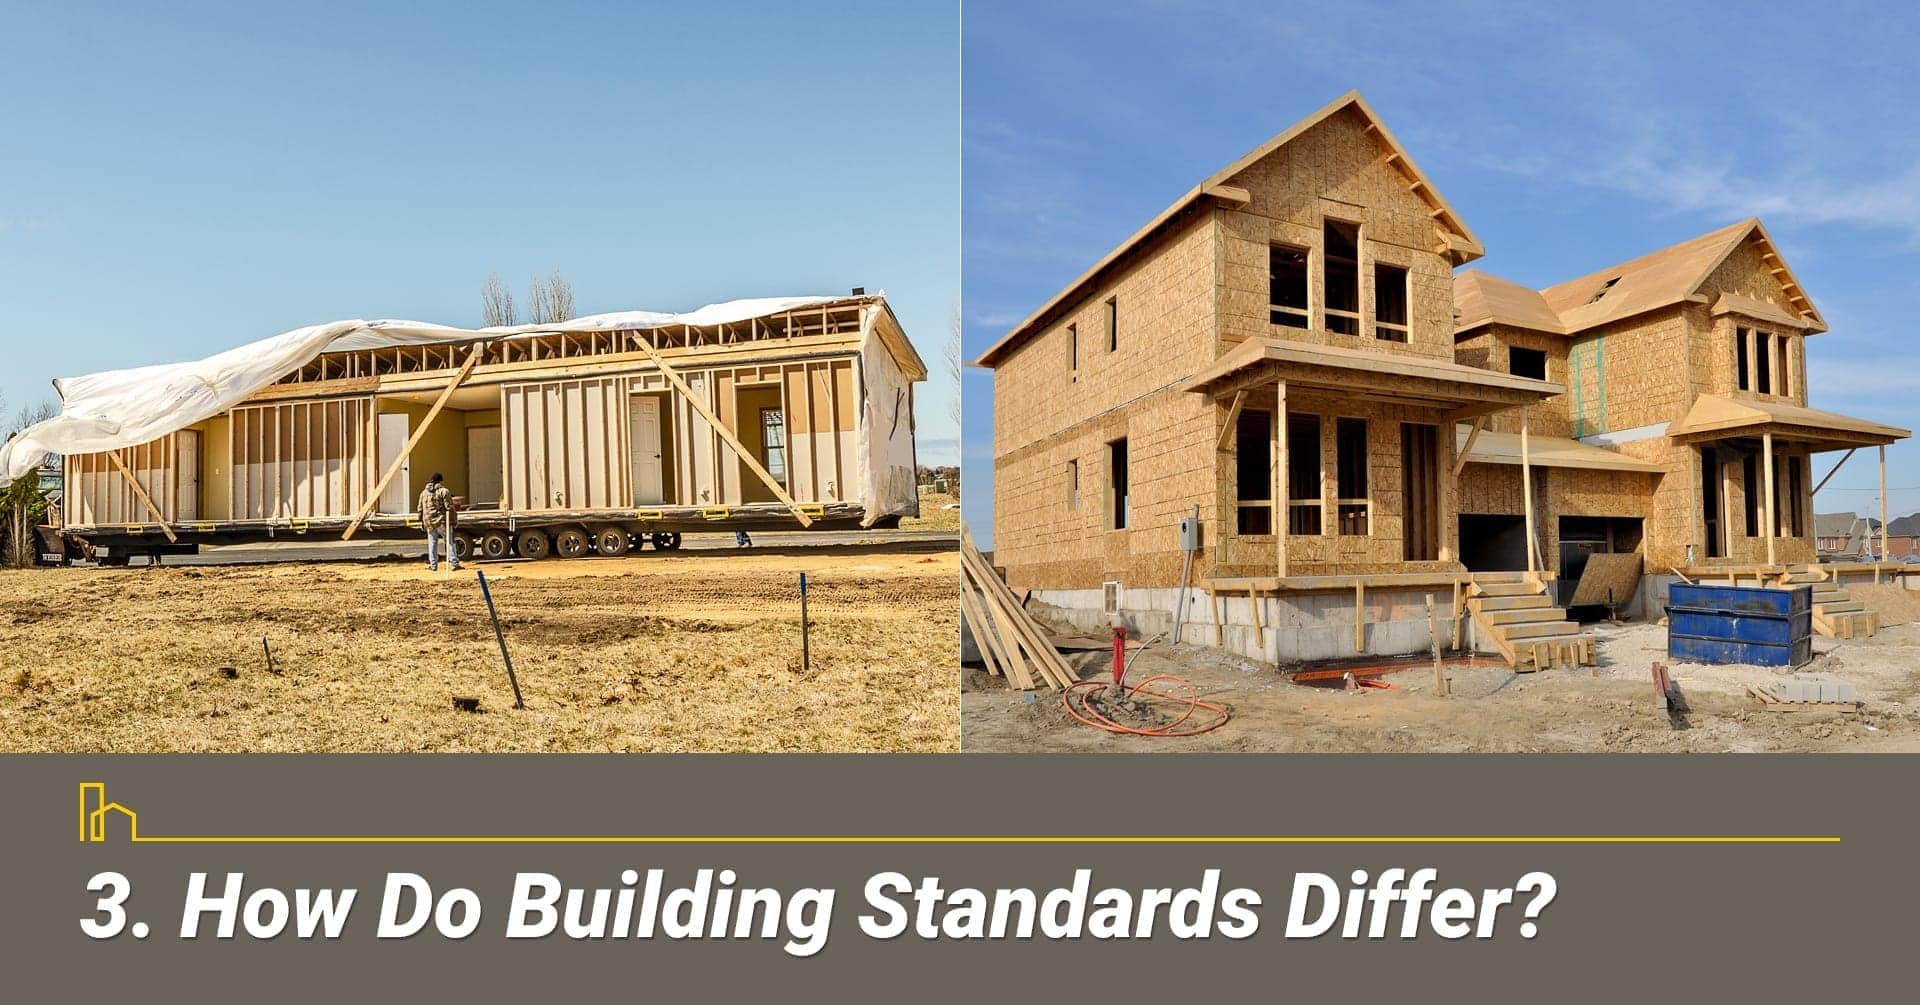 How Do Building Standards Differ? standards for site-built and manufactured homes